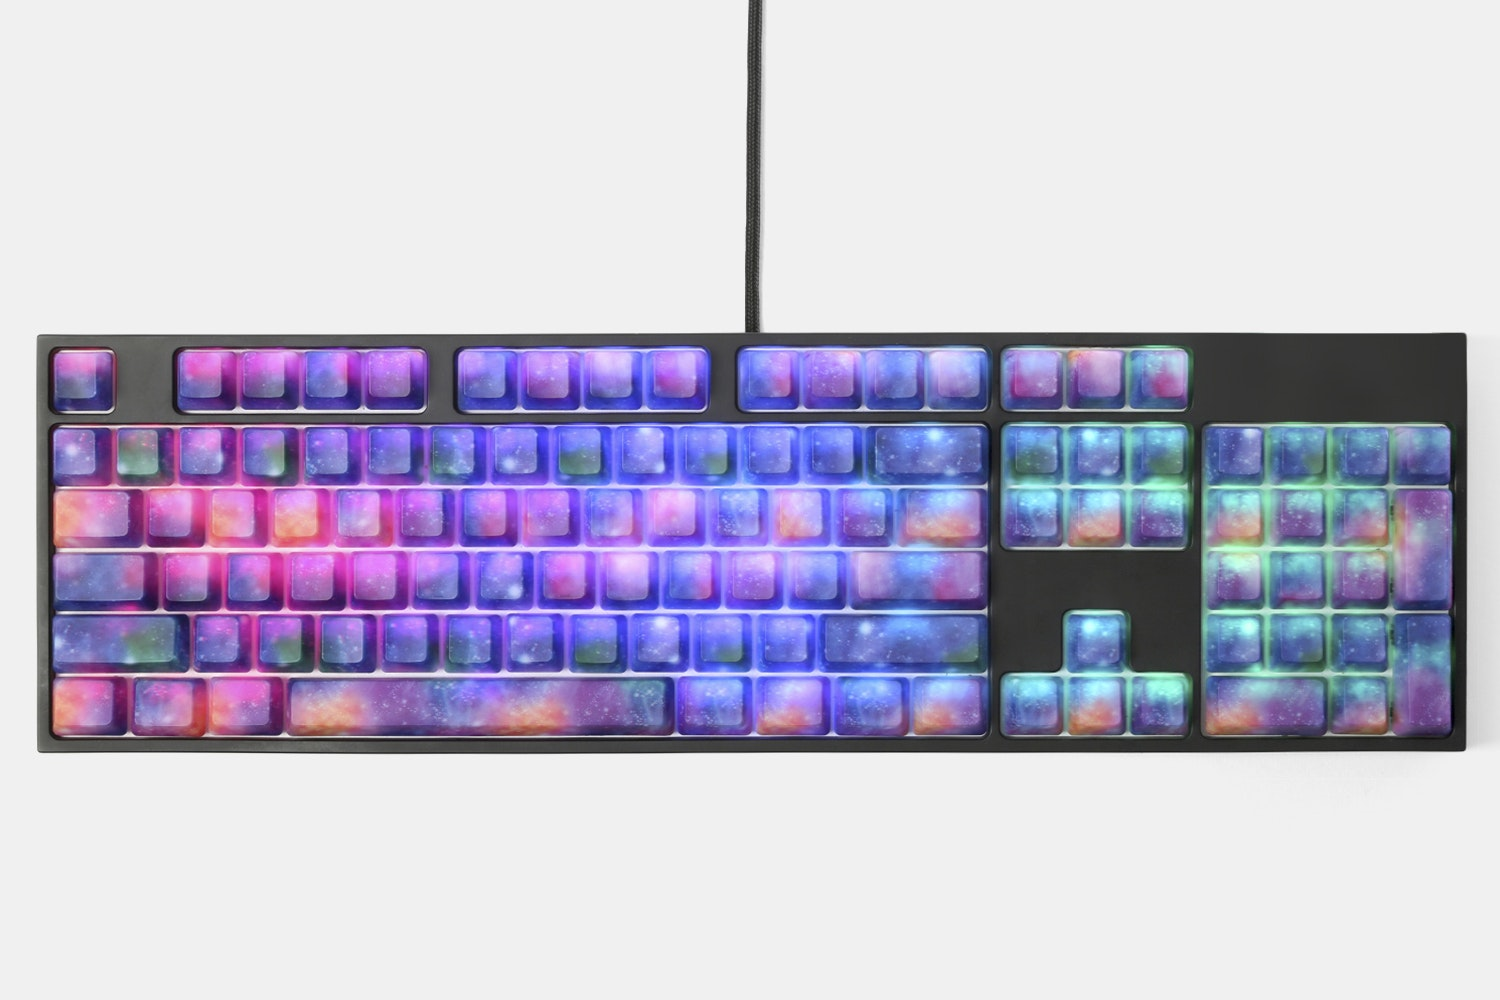 Nebula ABS Water Transfer Keycap Set